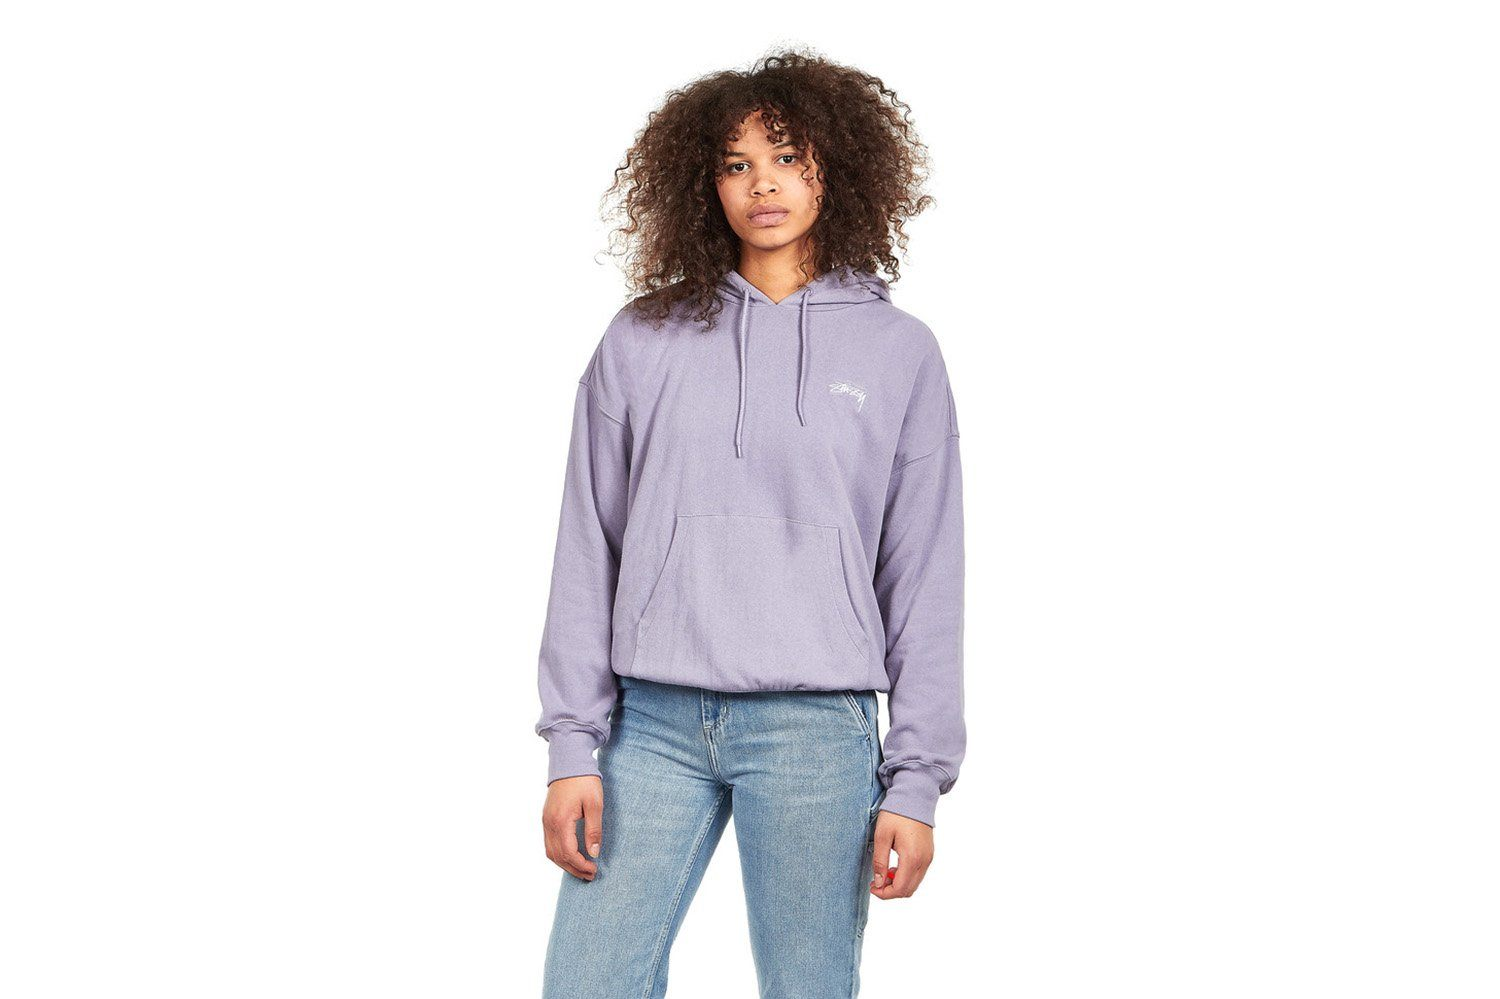 VIOLET FRENCH TERRY HOODIE WOMENS SOFTGOODS STUSSY LAVENDER XS